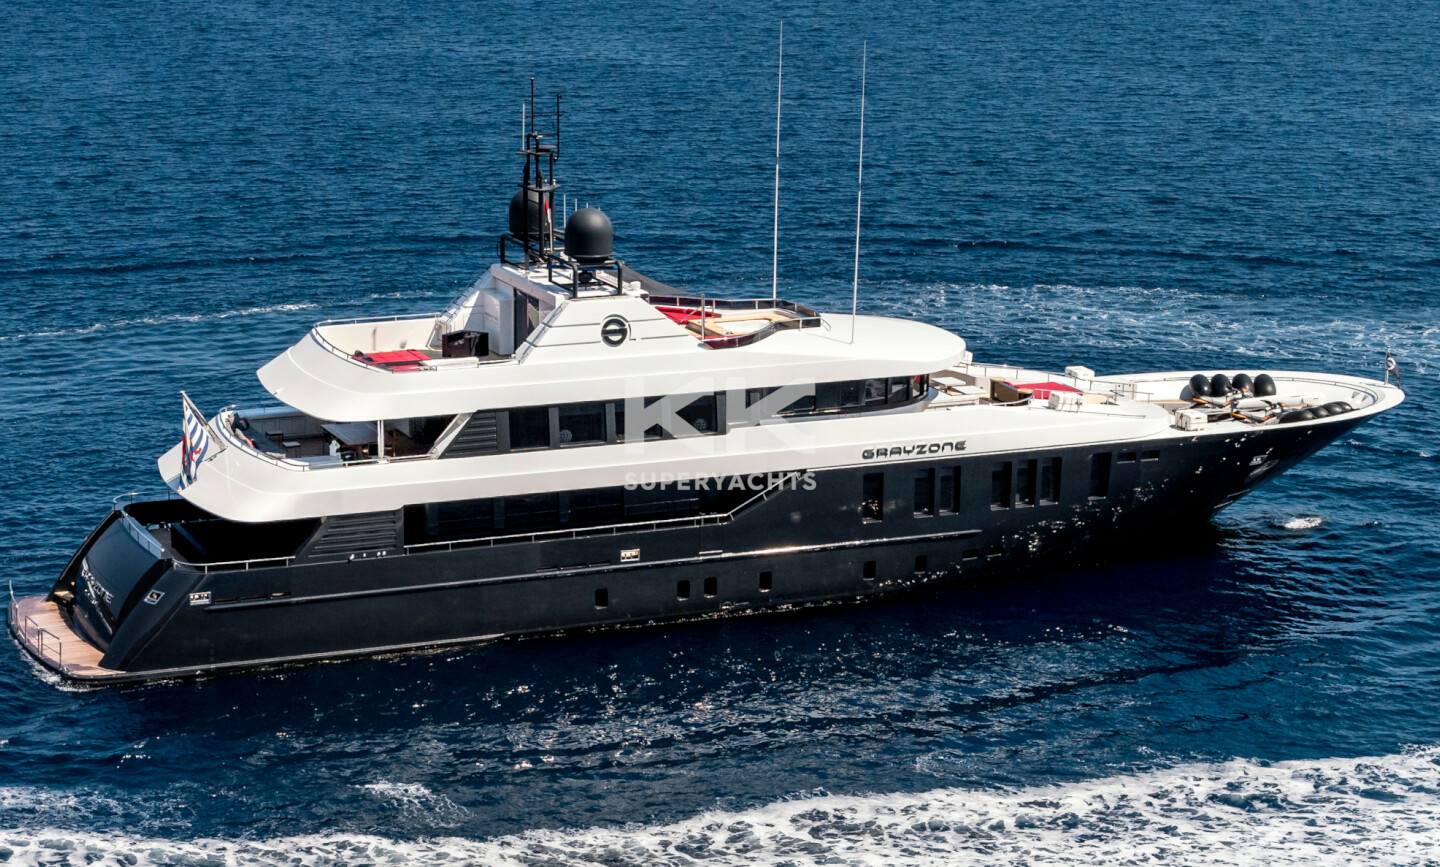 Grayzone yacht for Sale 6